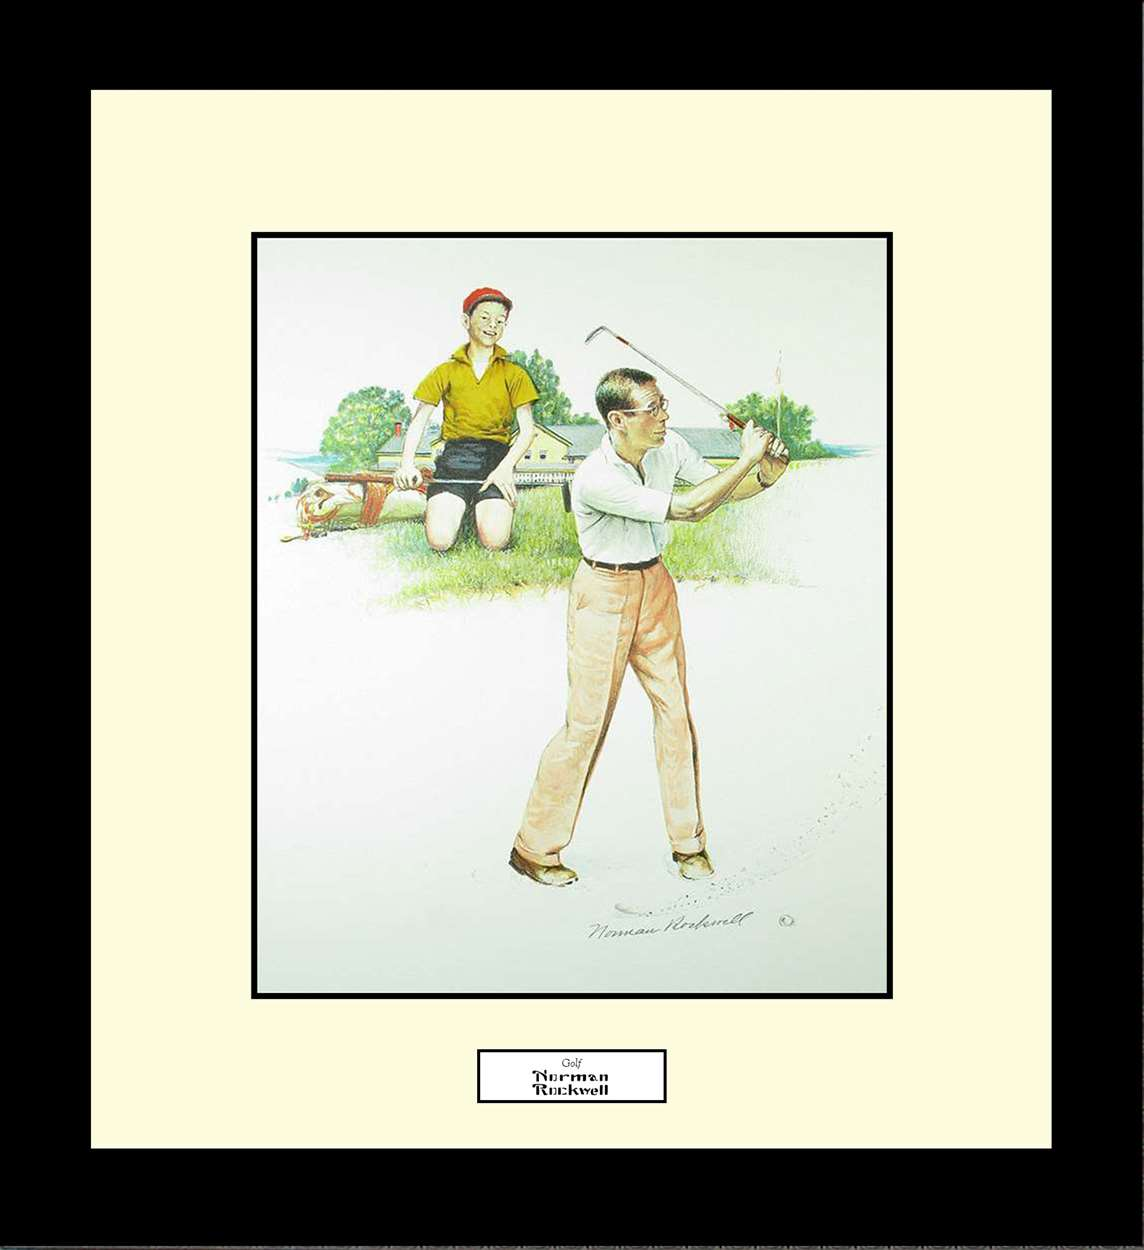 Golf, Norman Rockwell, 16x18